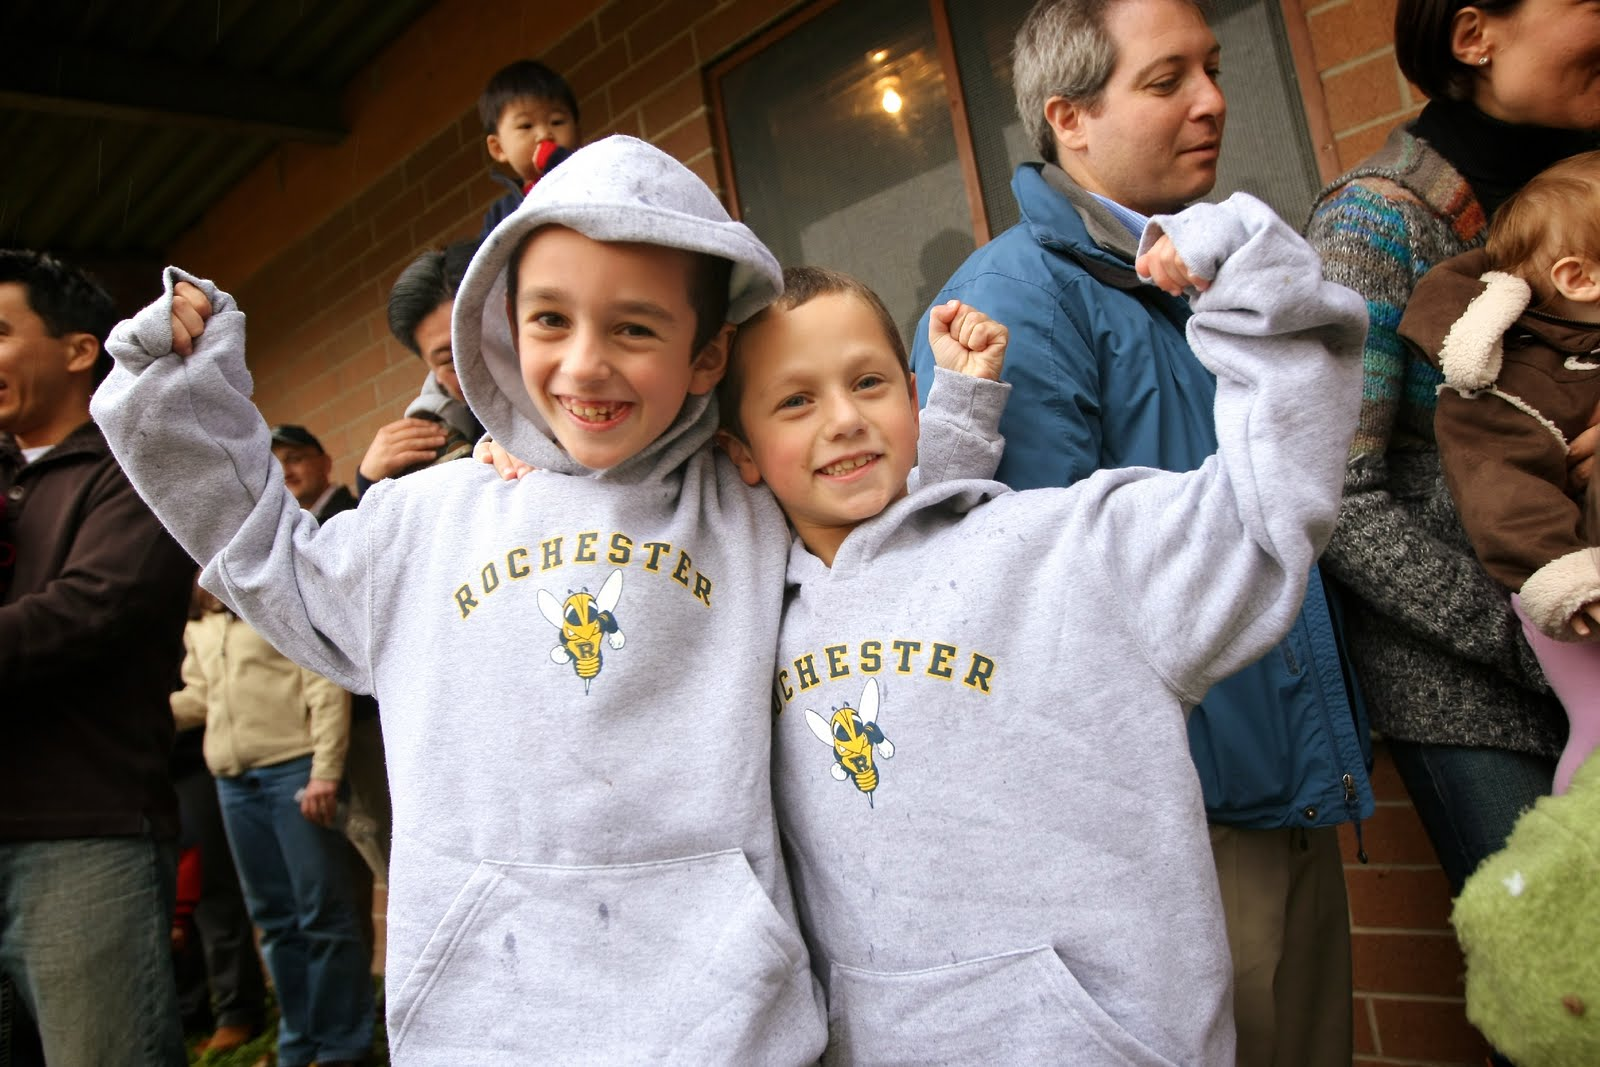 boys in University of Rochester clothing